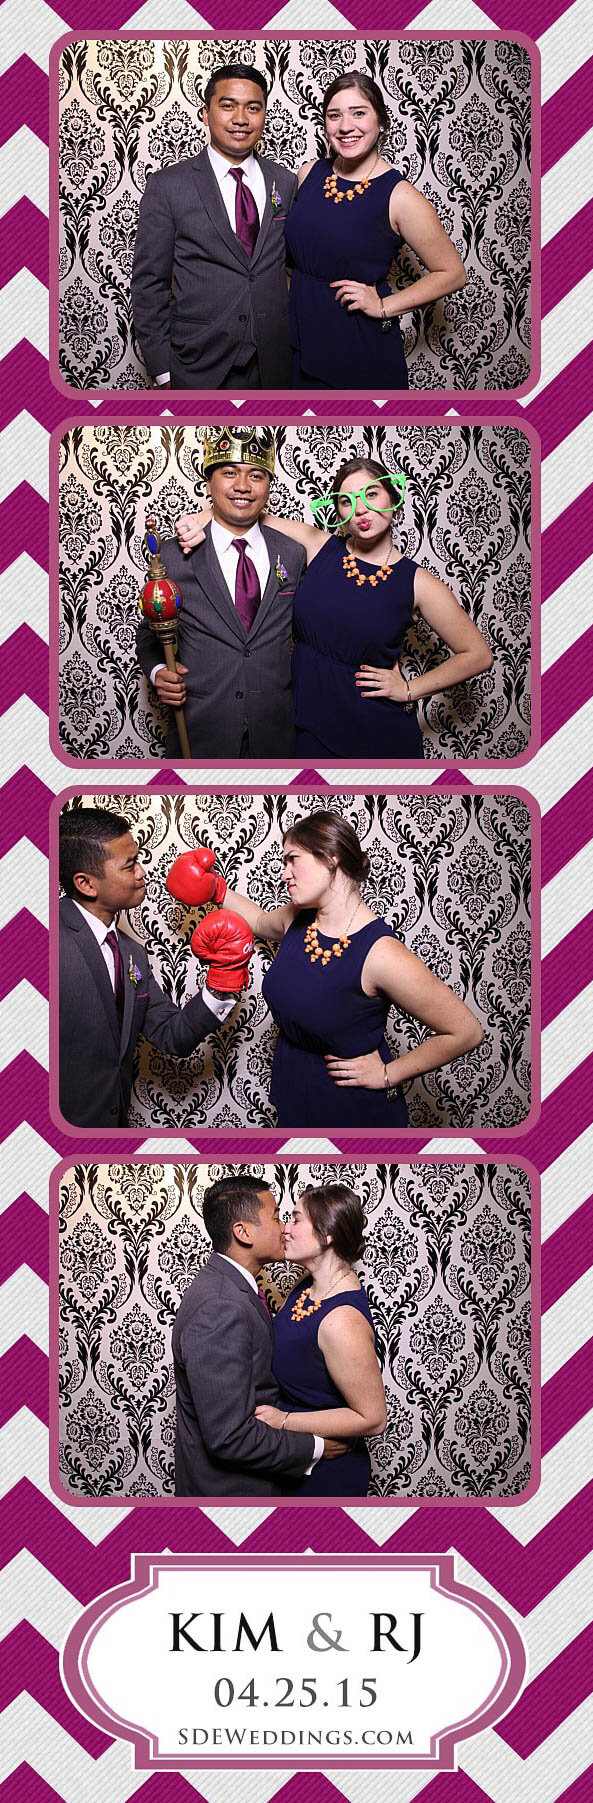 Toronto Filipino Wedding Photo Booth Rental at Teatro Conference Centre Milton 3